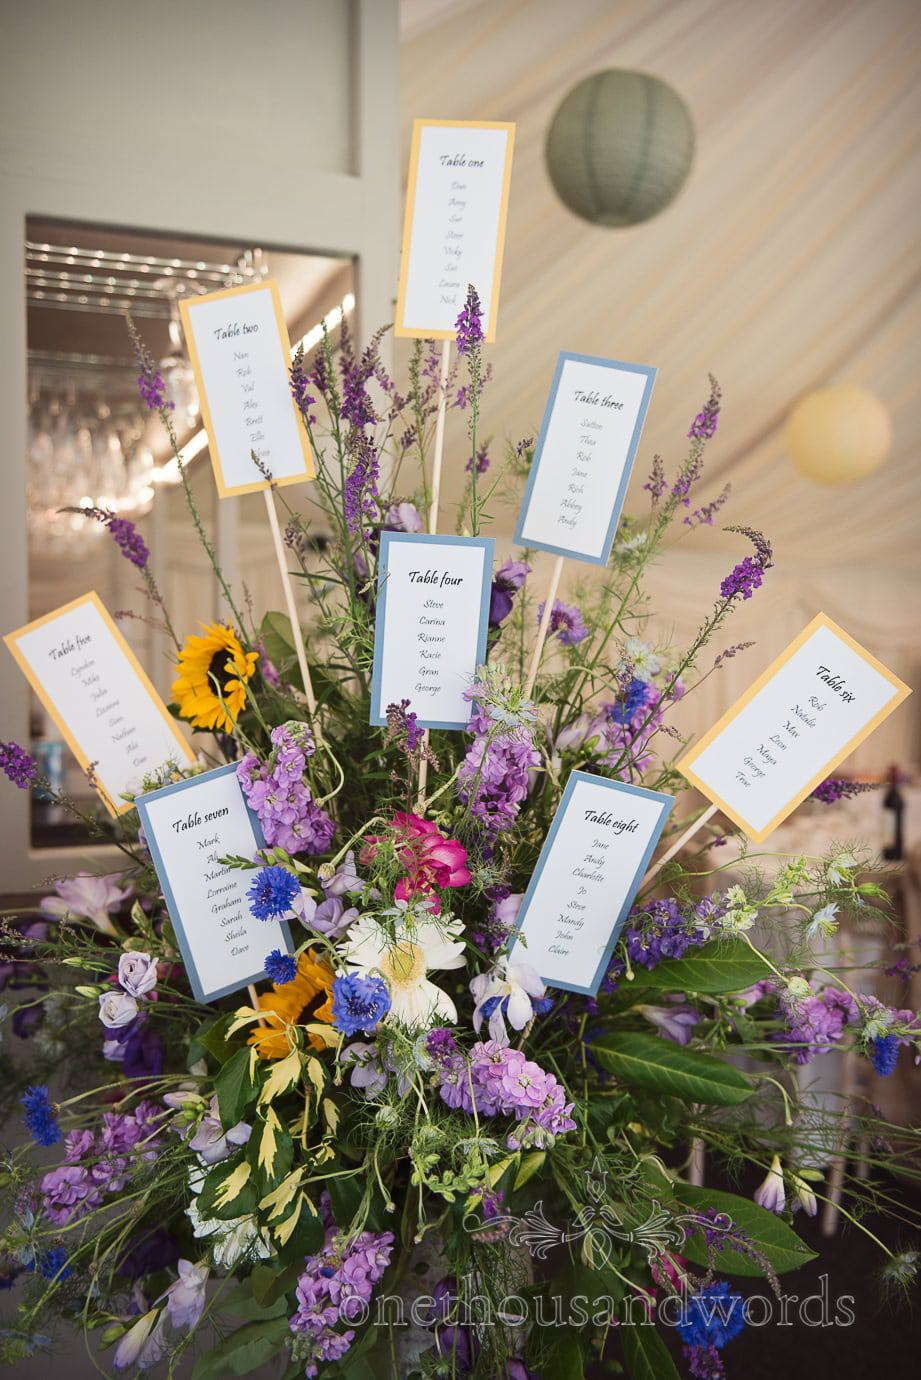 Summer flowers table plan at The Old Vicarage wedding marquee in New Forest